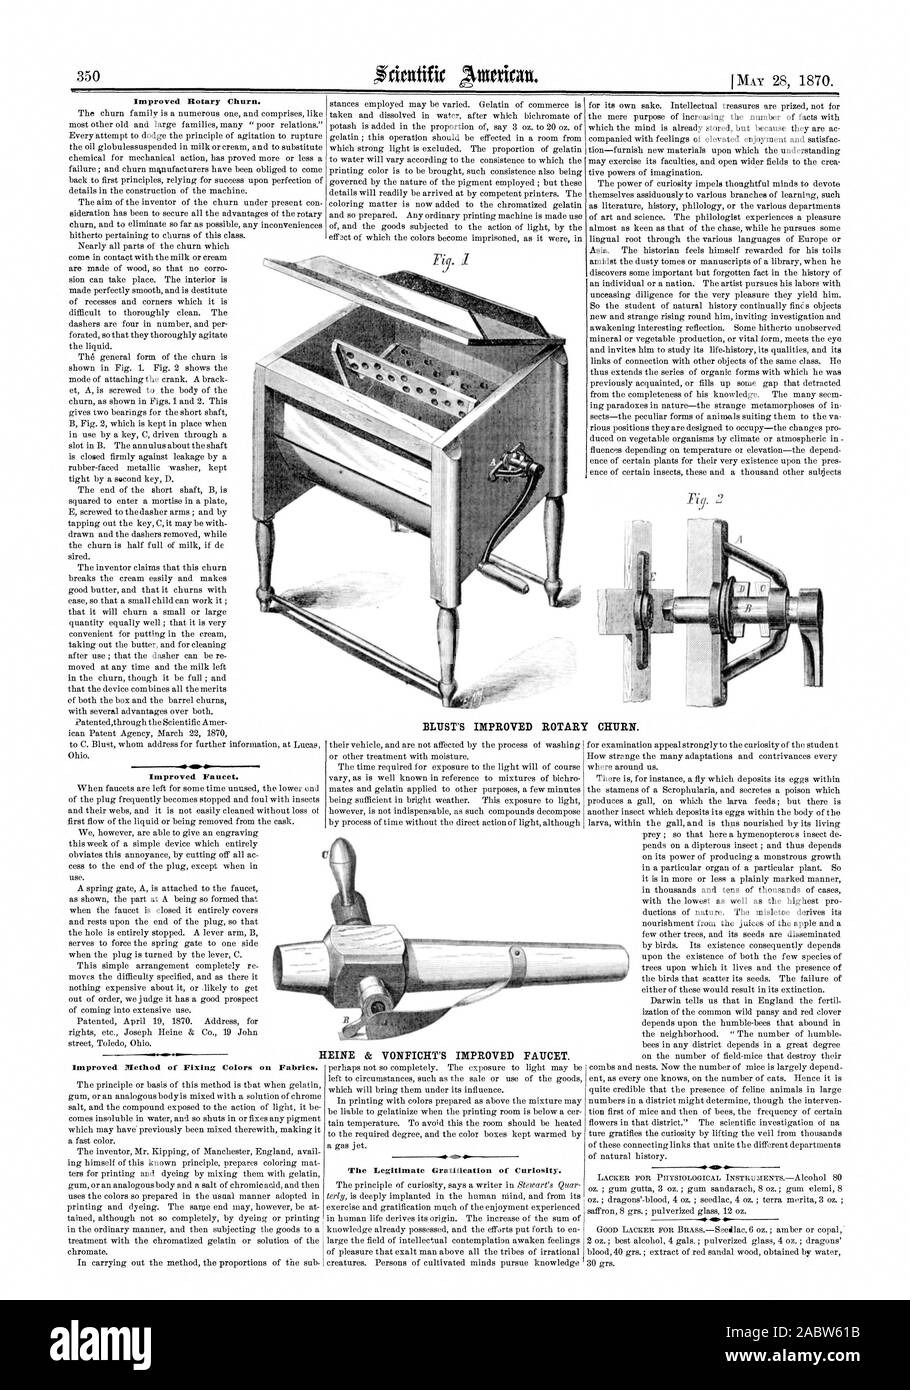 Improved Rotary Churn. -1S-41 Improved Faucet. Improved Method of Fixing Colors on Fabrics. The Legitimate Gratification of Curiosity. BUST'S IMPROVED ROTARY CHURN. HEINE & VONFICHT'S IMPROVED FAUCET., scientific american, 1870-05-28 Stock Photo